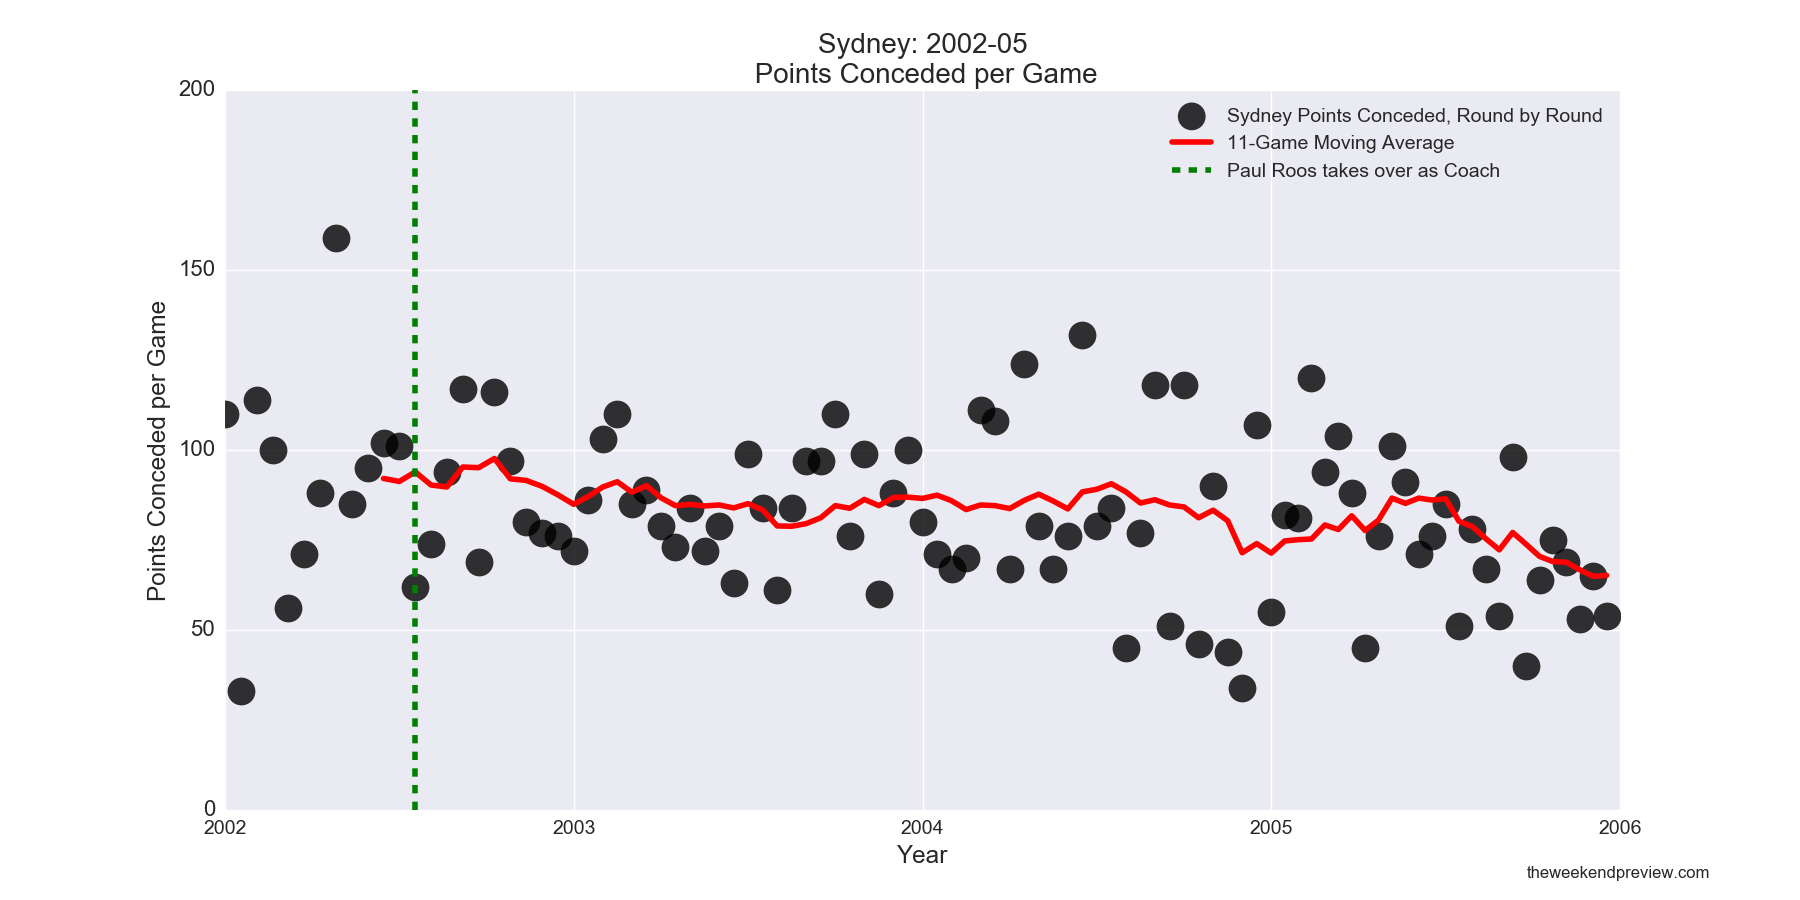 Figure-3: Sydney Points Conceded in years leading up to 2005 Premiership